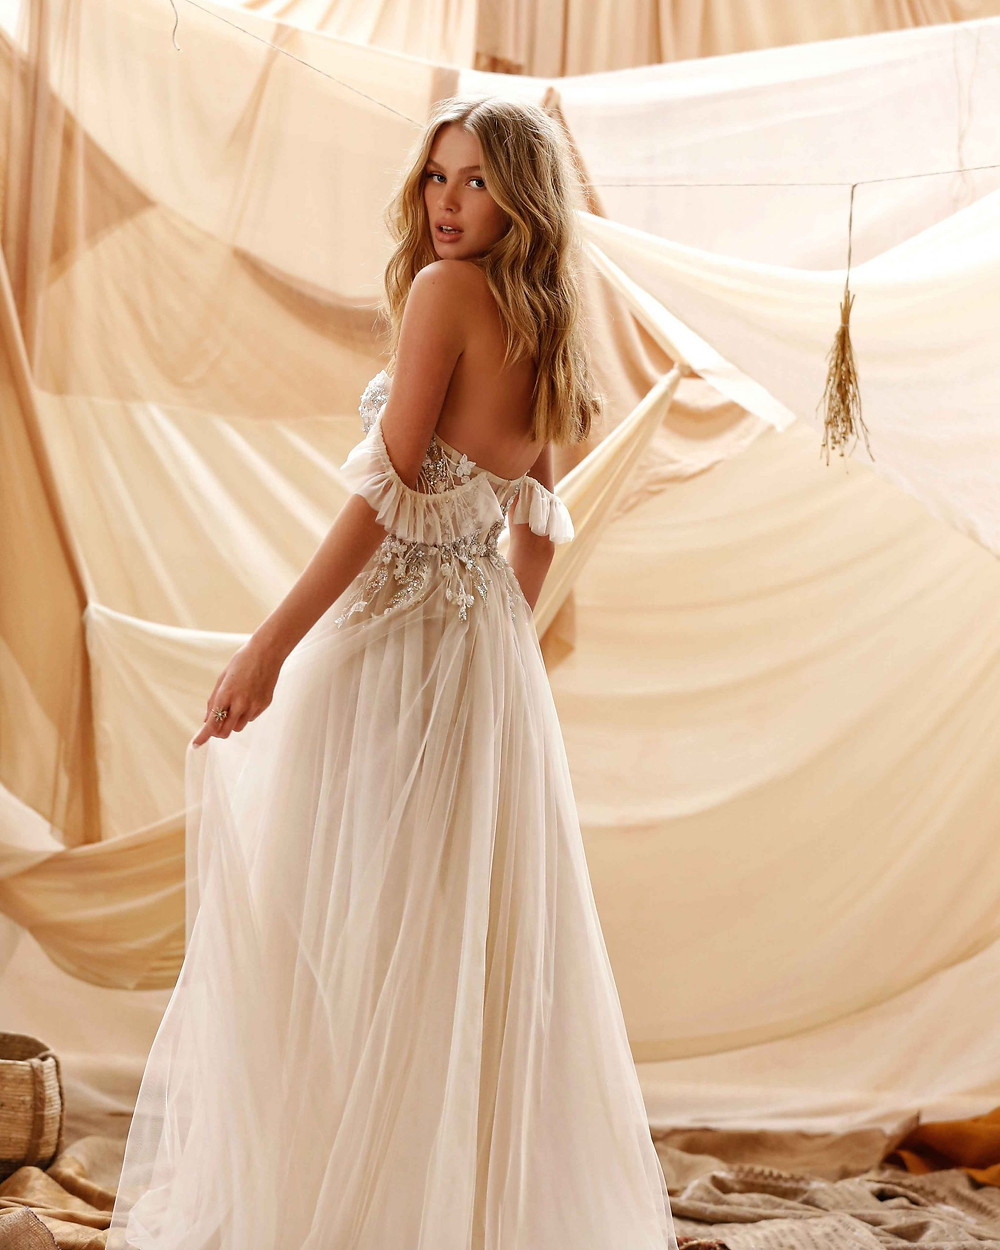 A Berta 2021 off the shoulder, bohemian or gypsy style wedding dress